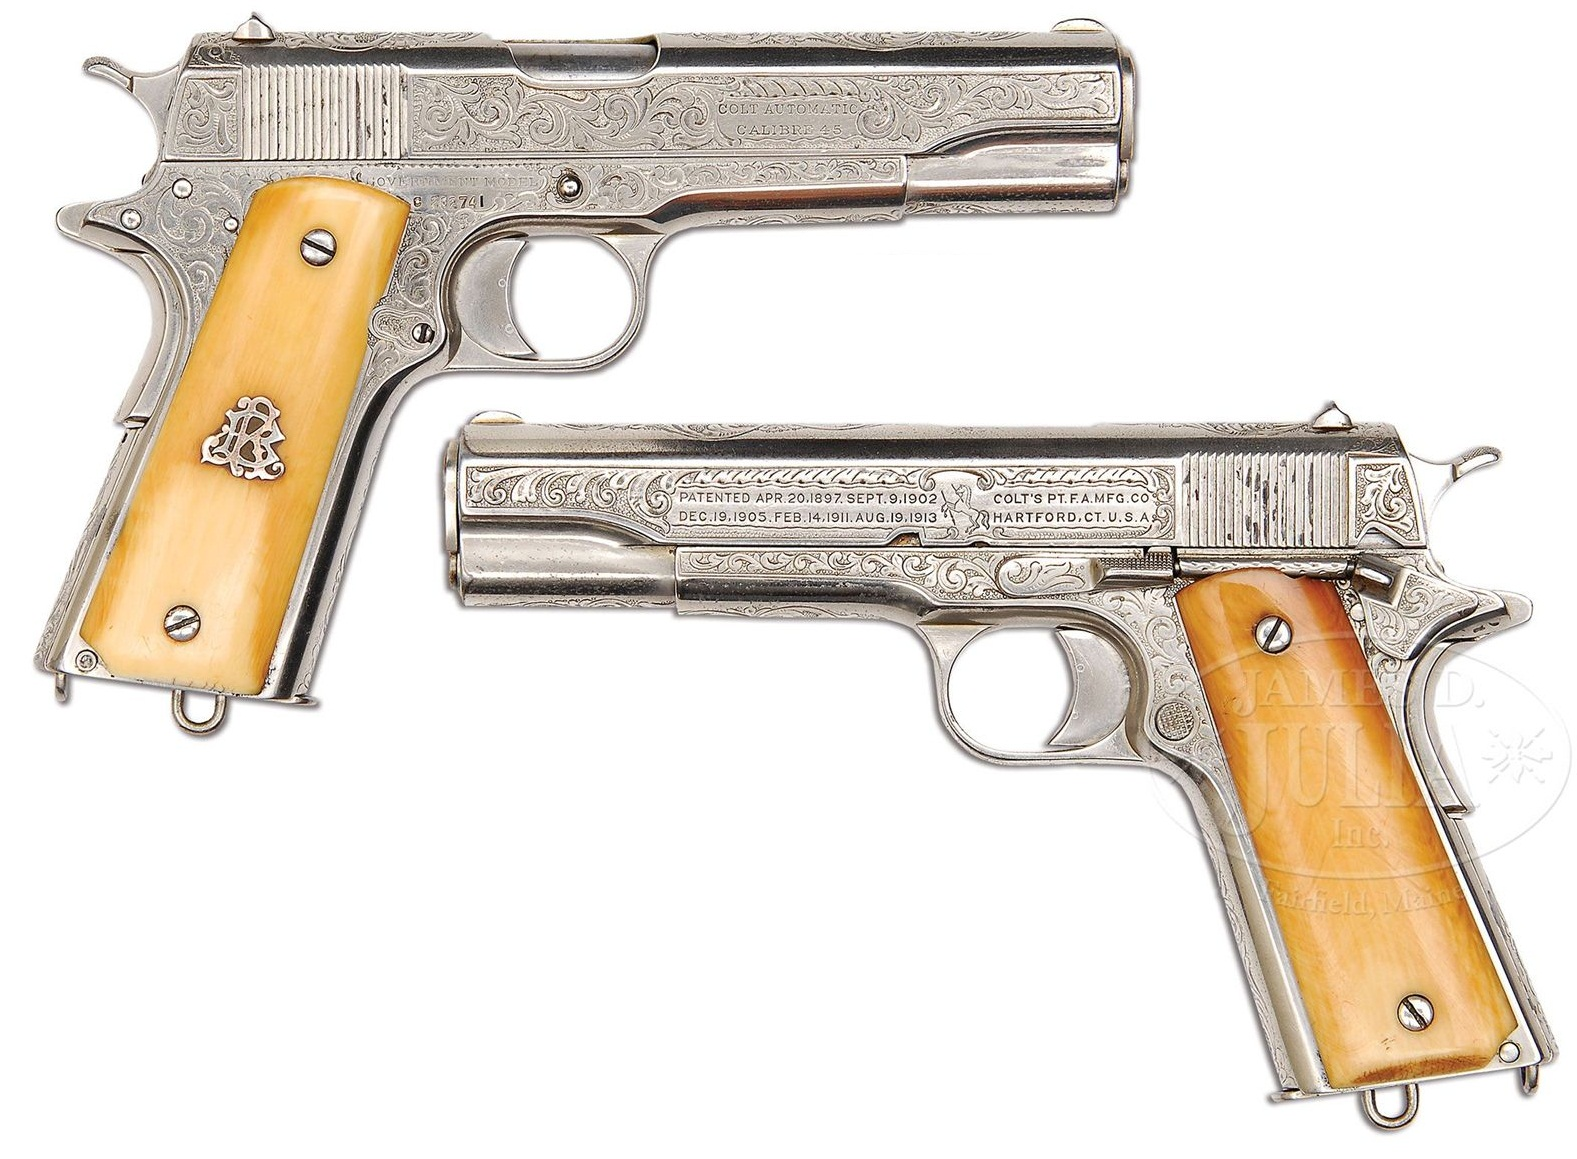 Colt 1911 factory engraved ivory grips and Nickel finish frame